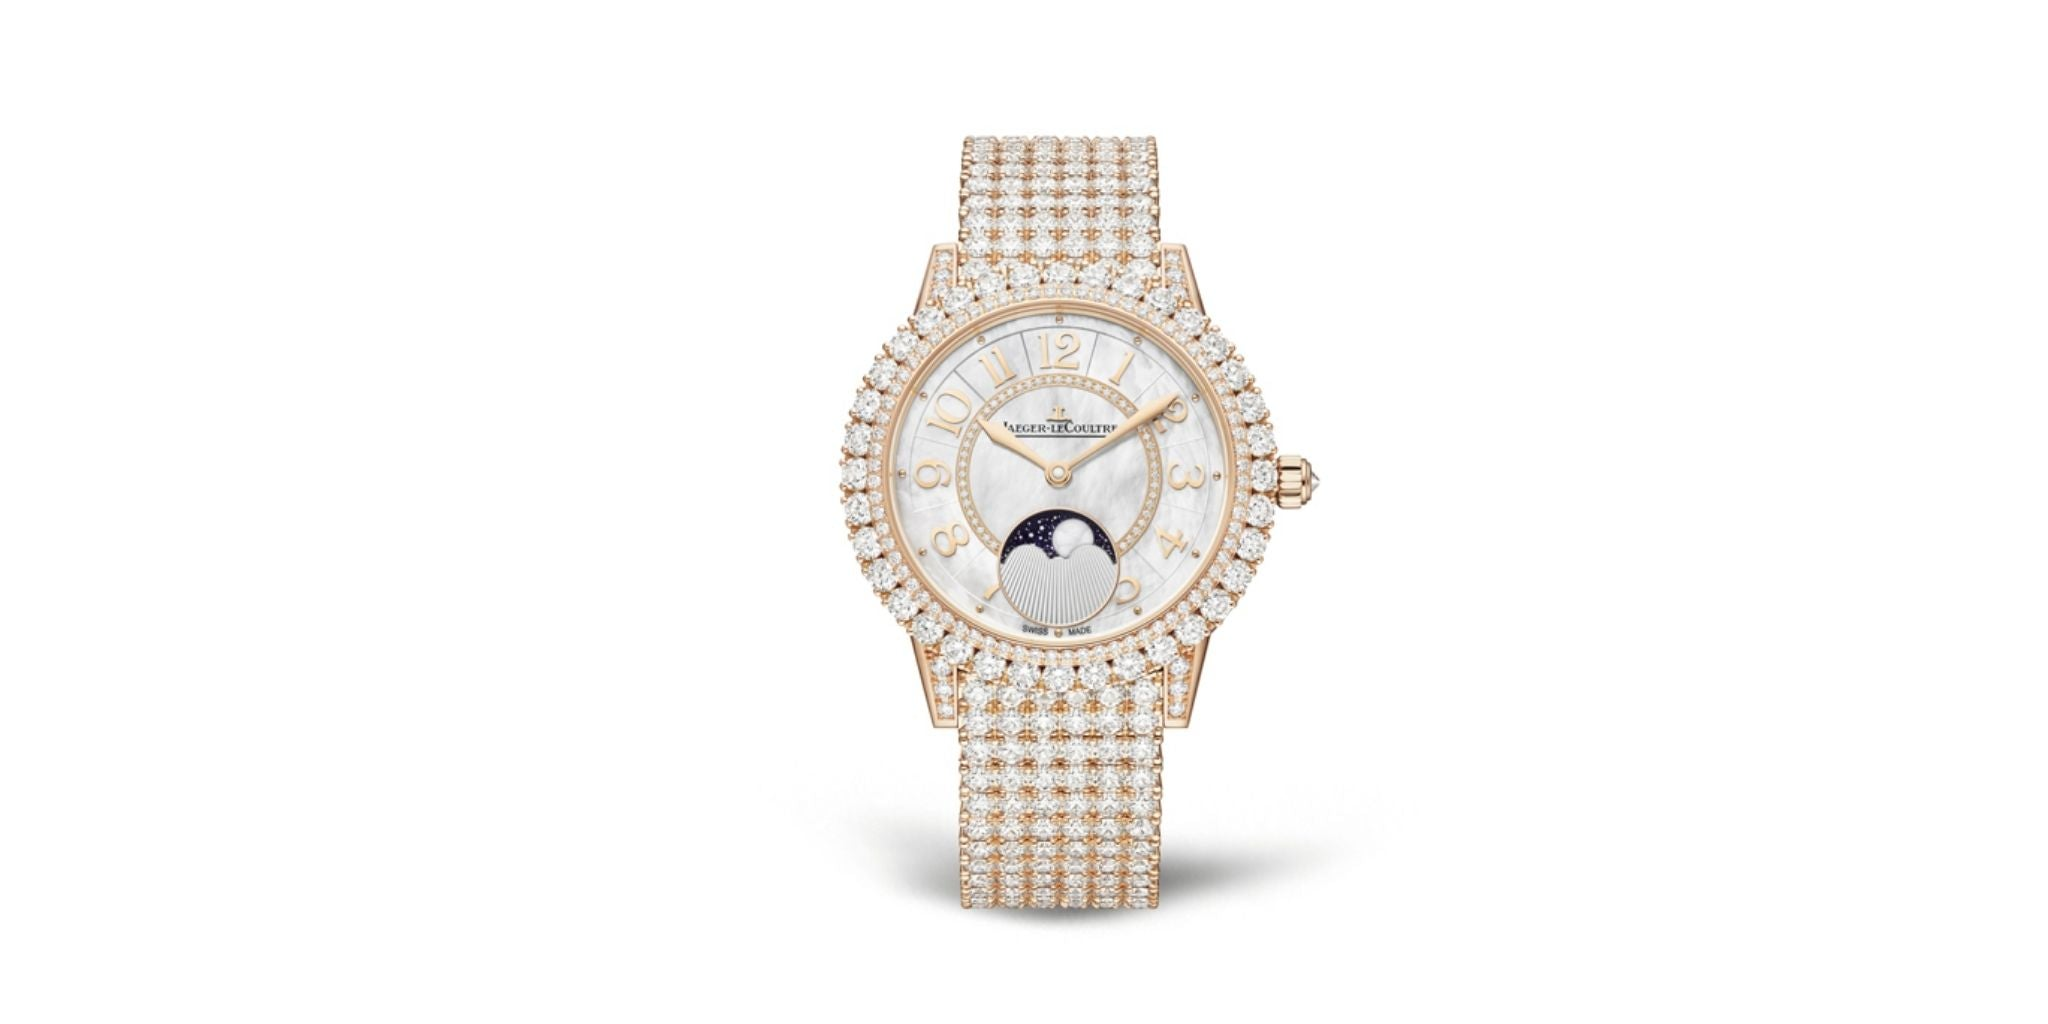 Diamond watches complete the trousseau